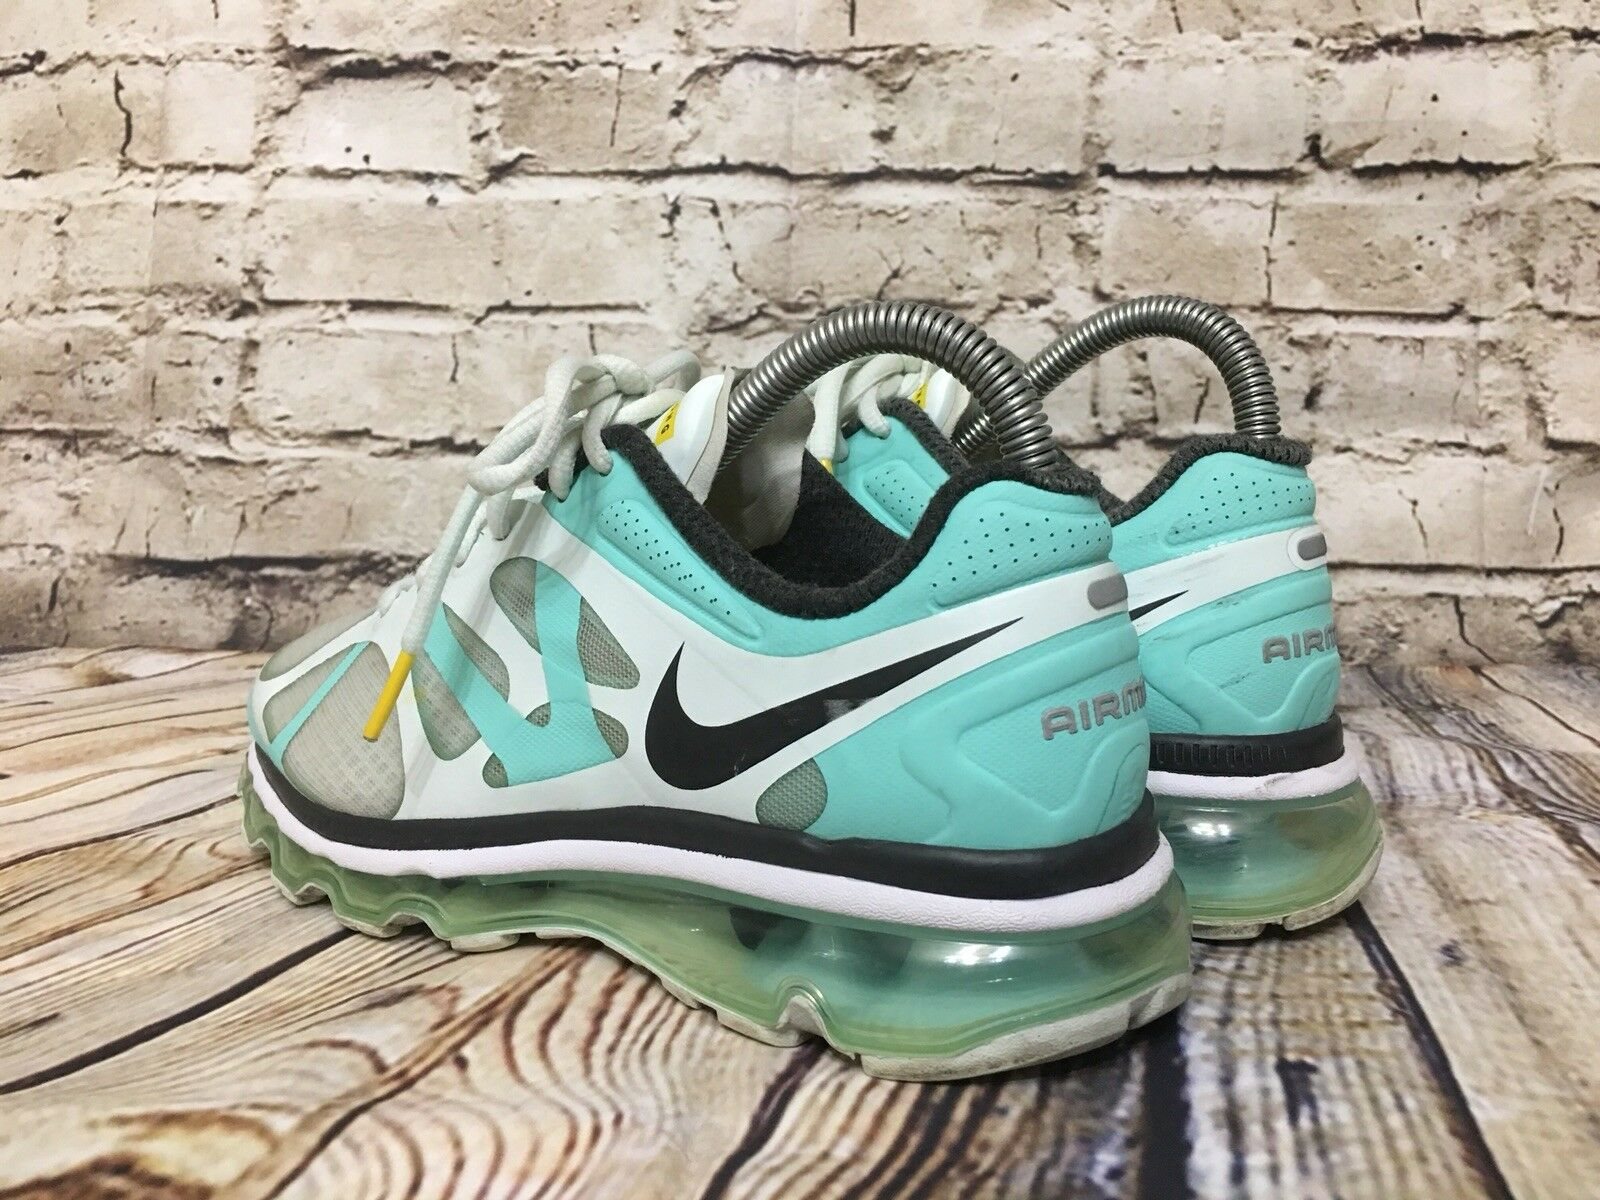 NIKE Women's Women's Women's AIR MAX + 2012 LIVESTRONG RUNNING SHOES SIZE 5.5 Limited Edition cc77c1